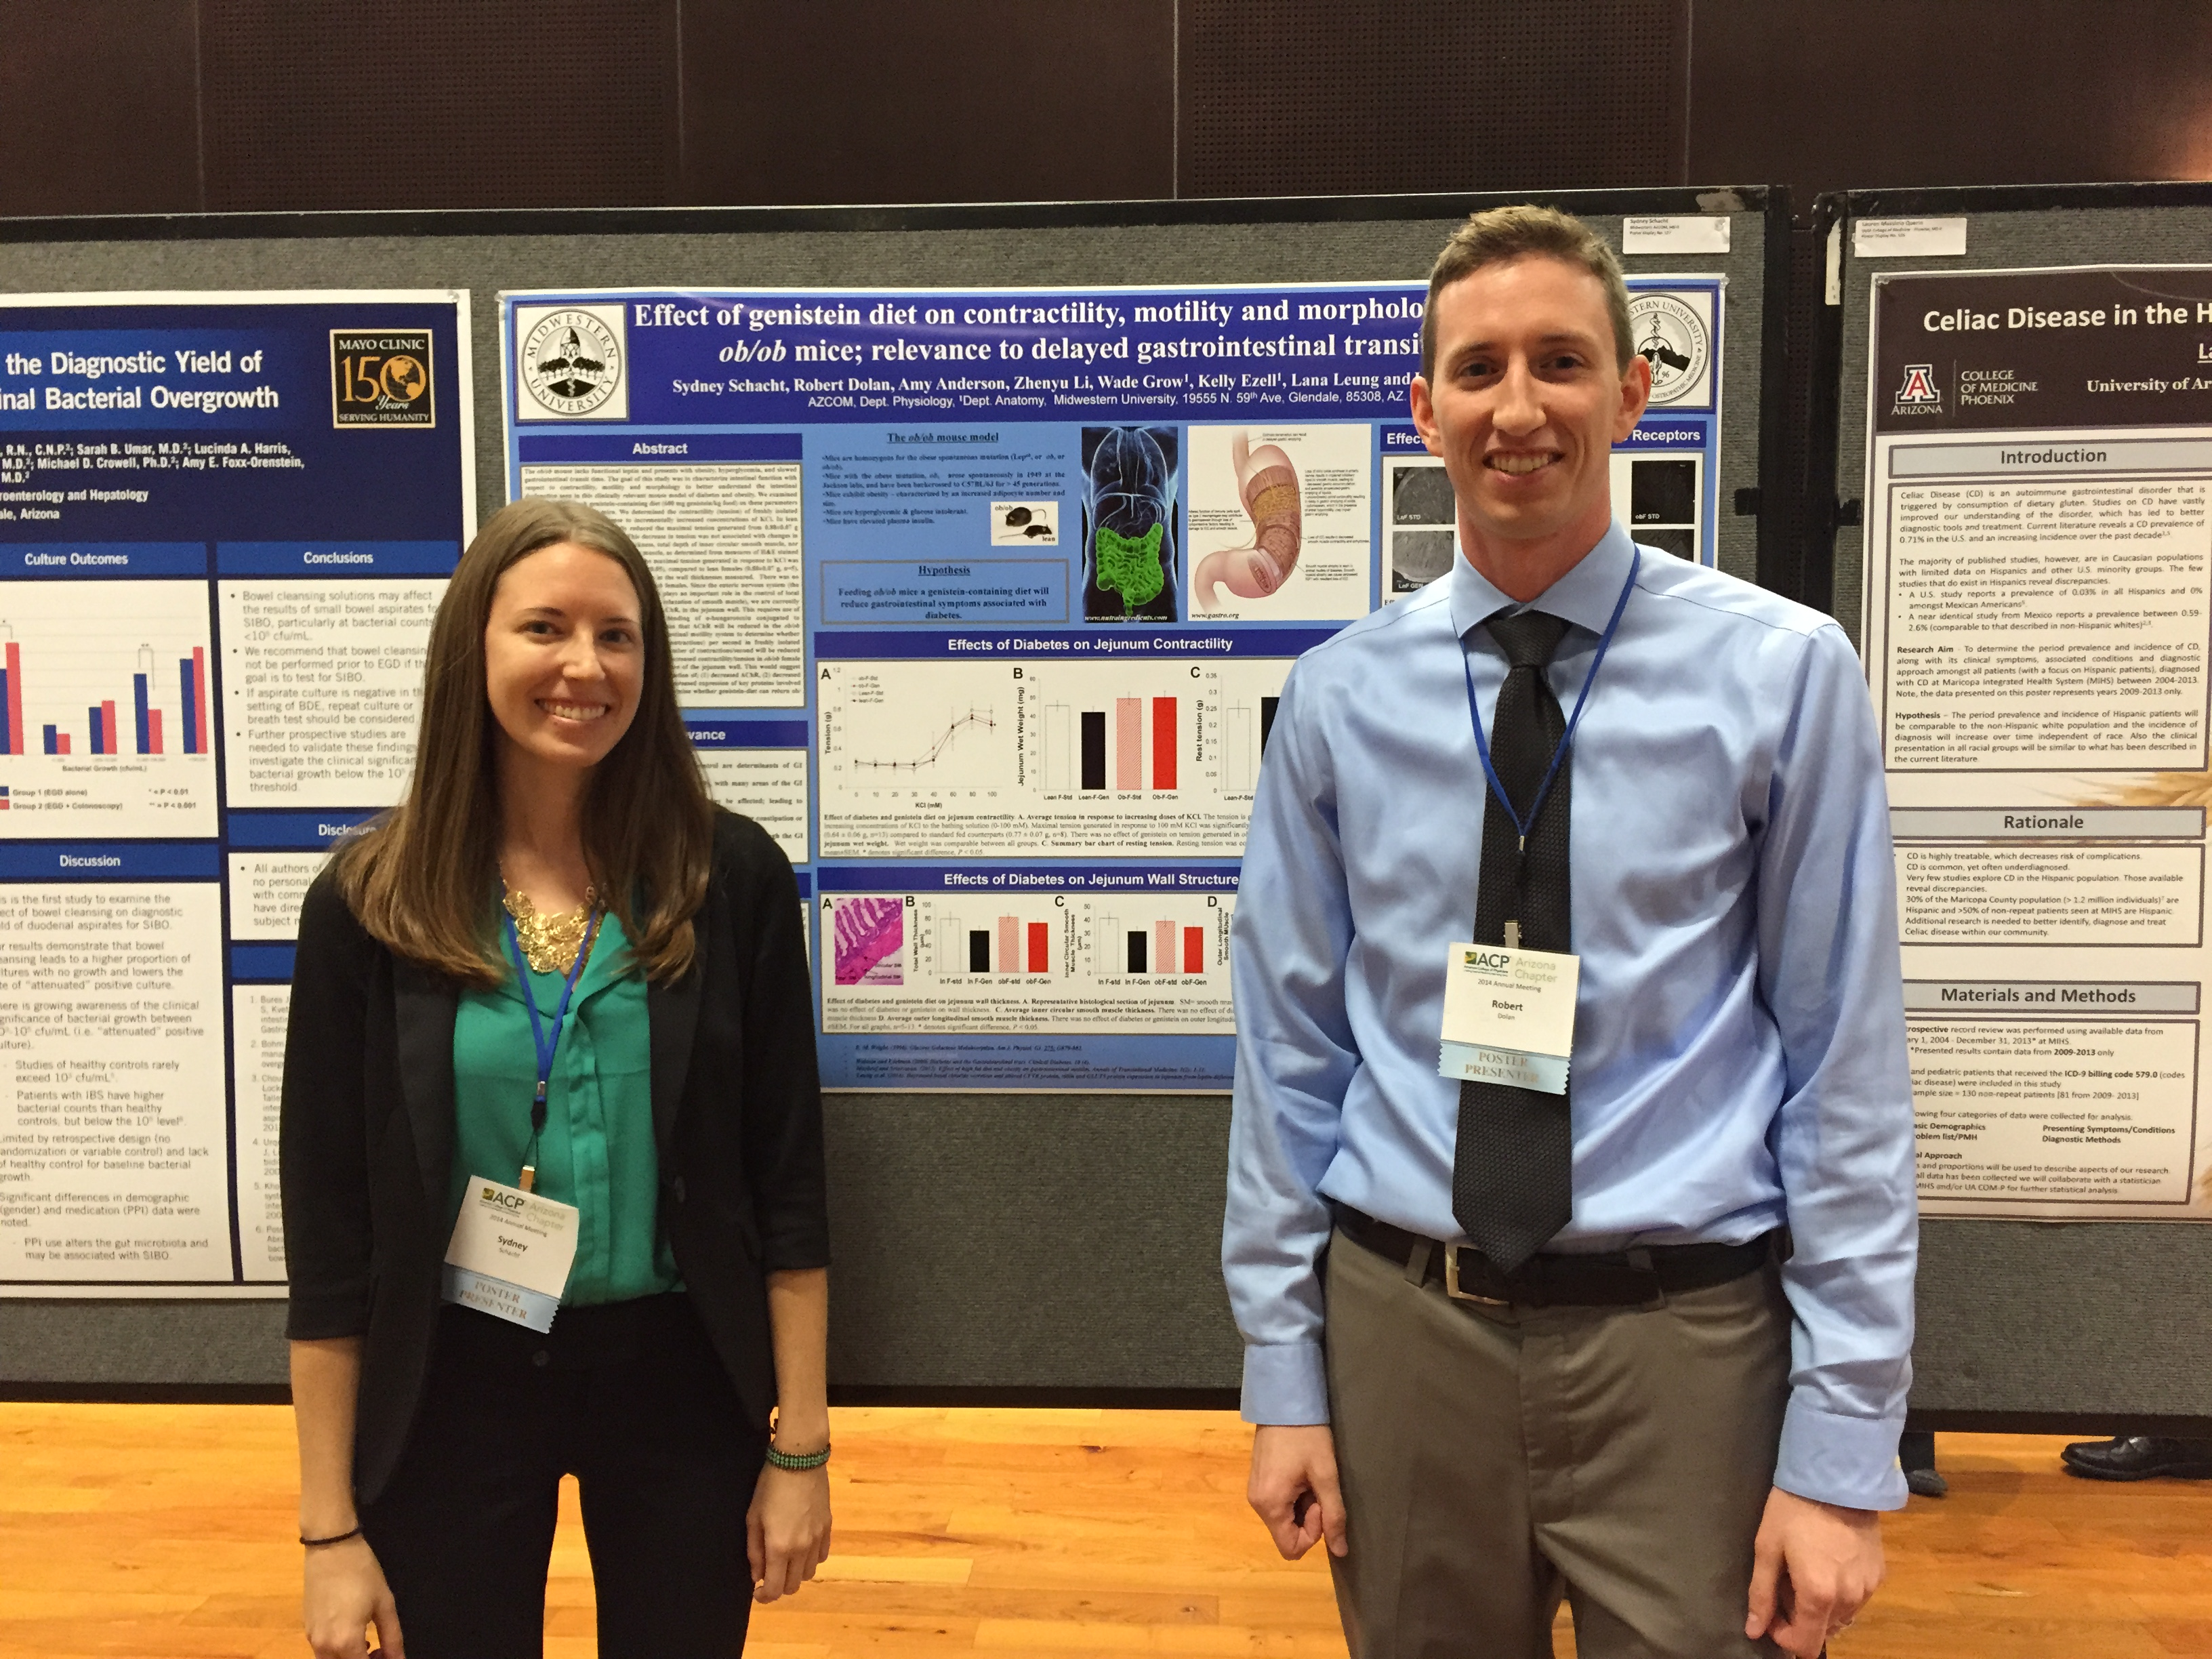 Sydney Schacht MSII and Robert Dolan MSII - presenting data at ACP 2014